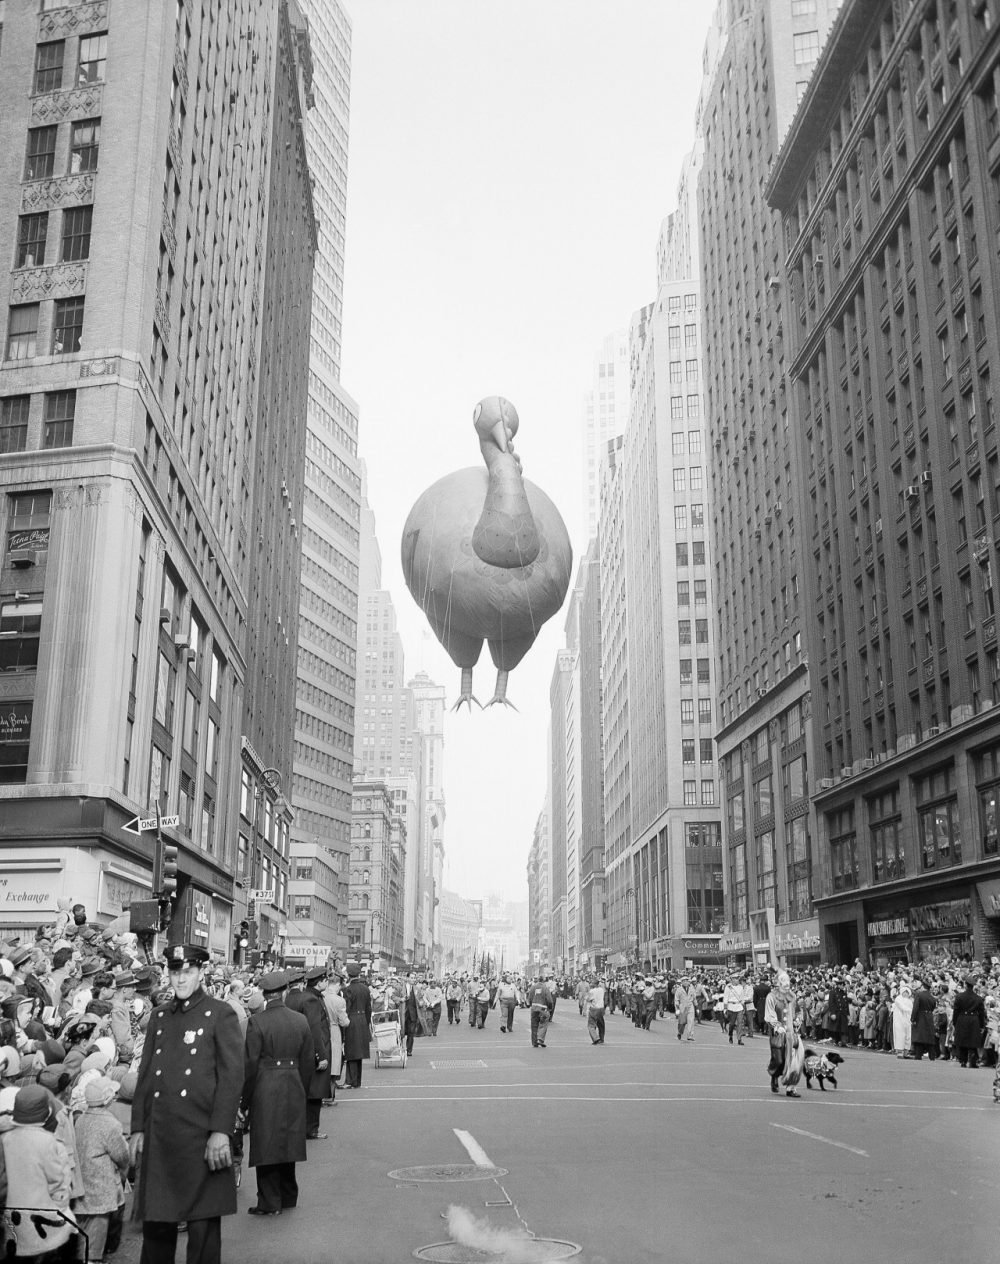 A giant turkey float squeezes between buildings as the 31st annual Macy's Thanksgiving Day Parade in 1957. (John Lindsay/AP)